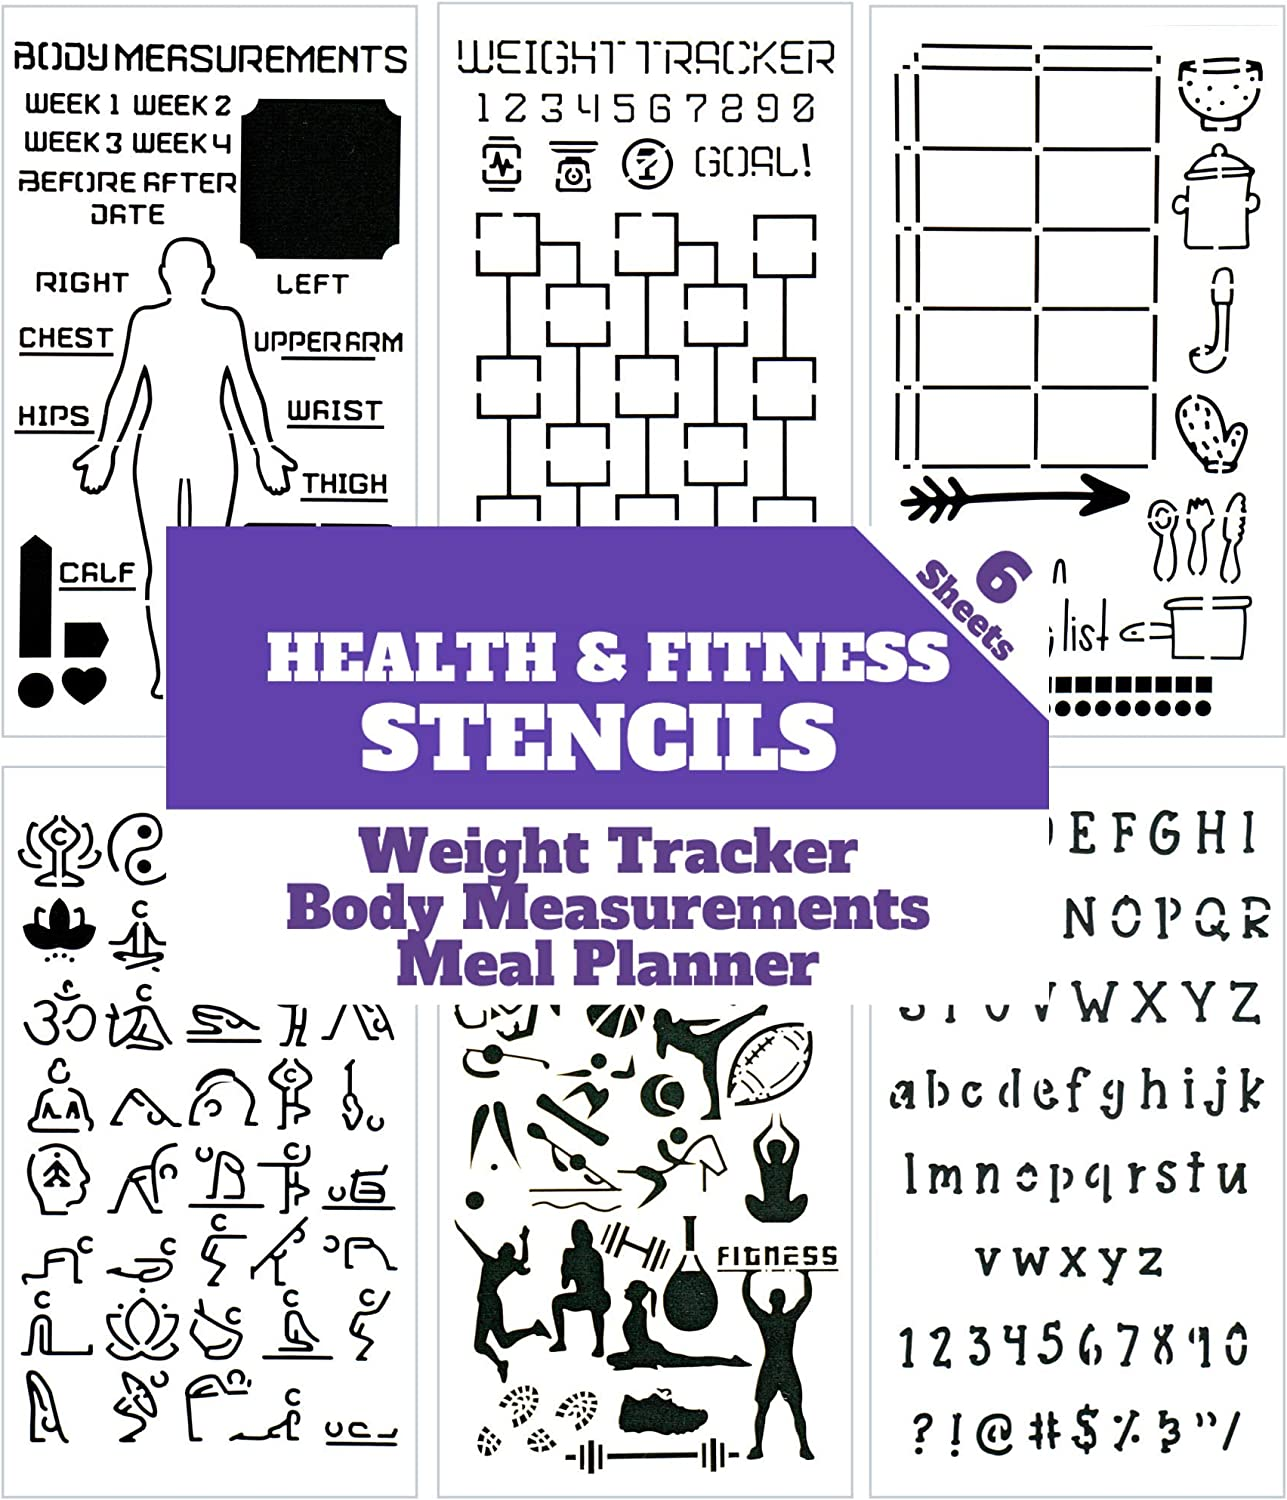 Health and Fitness Journal Stencil Set - Custom-Designed Supplies for Bullet Journal Workout Planners with DIY Templates to Track Habits, Exercise, Weight and Meal Planning by Sunny Streak